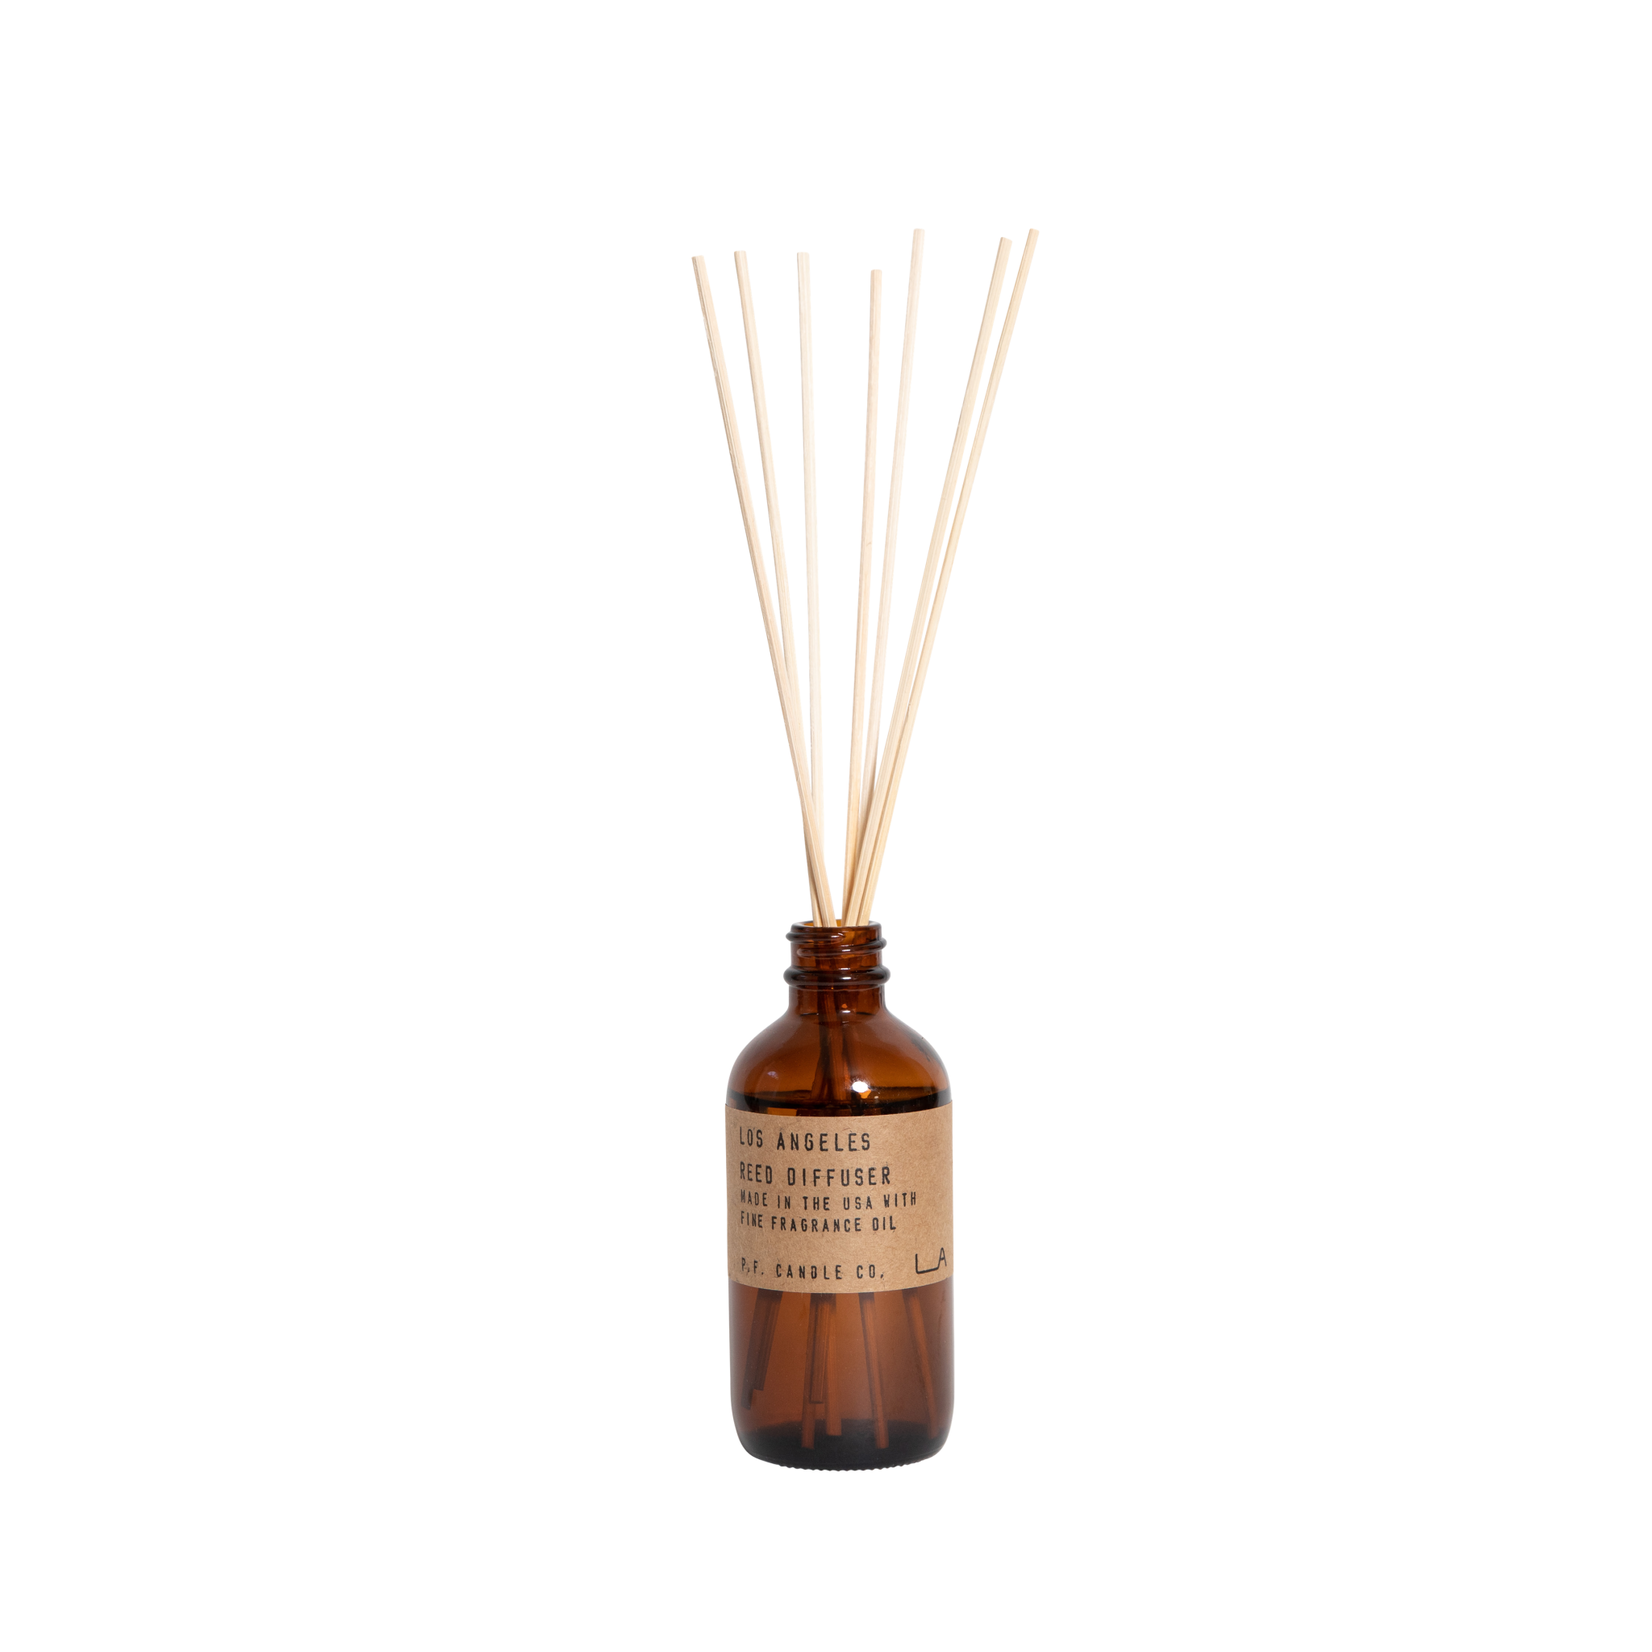 P.F. Candle Co. P.F. Candle Diffuser Los Angeles